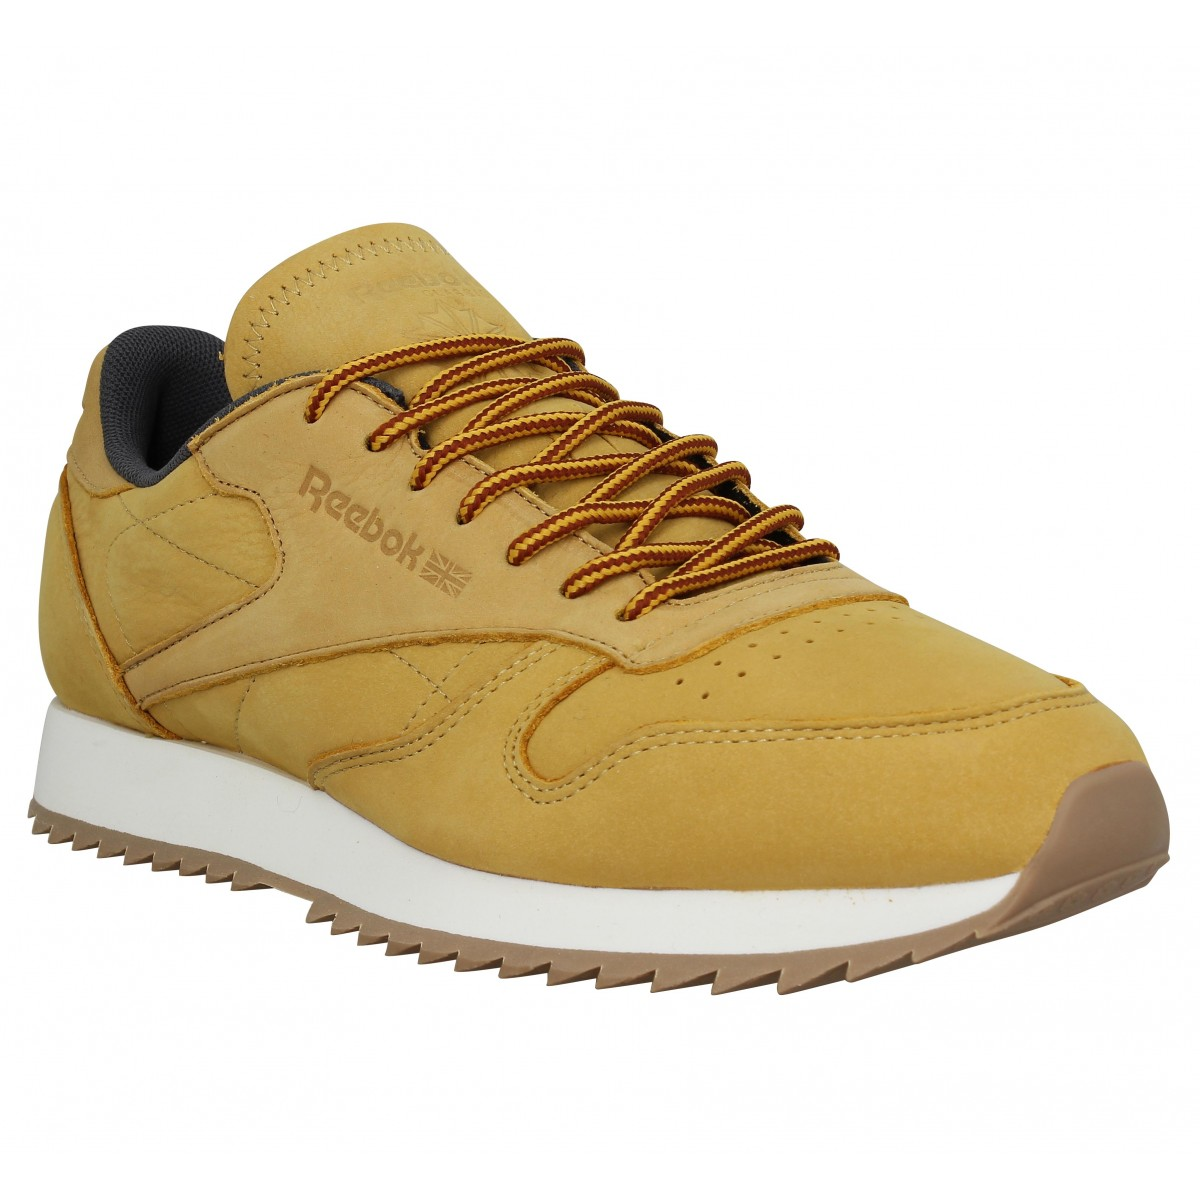 Reebok Marque Classic Leather Ripple...